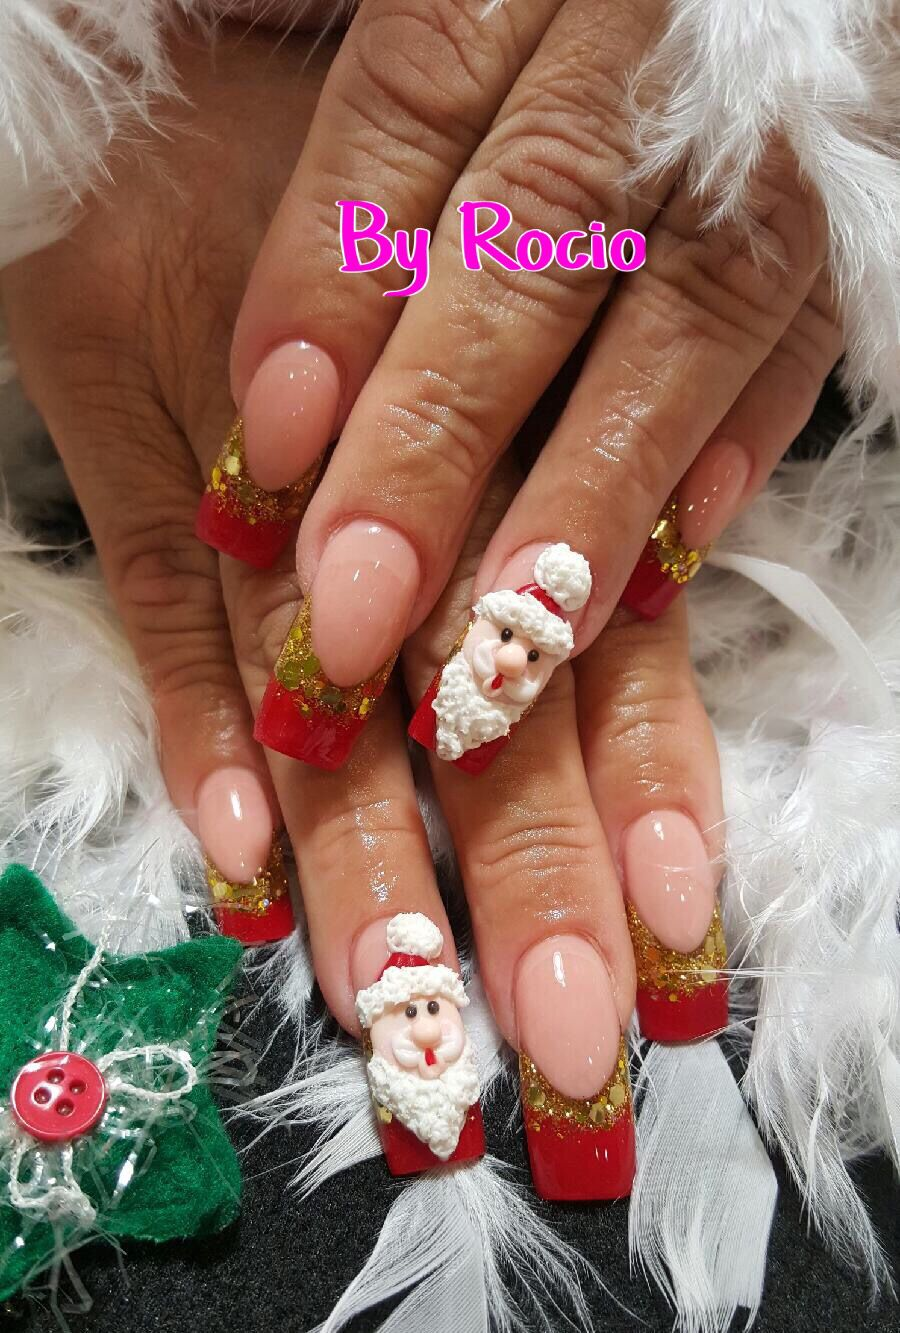 Encapsulated Nails With 3d Designs For Christmas Nail Art Pinte